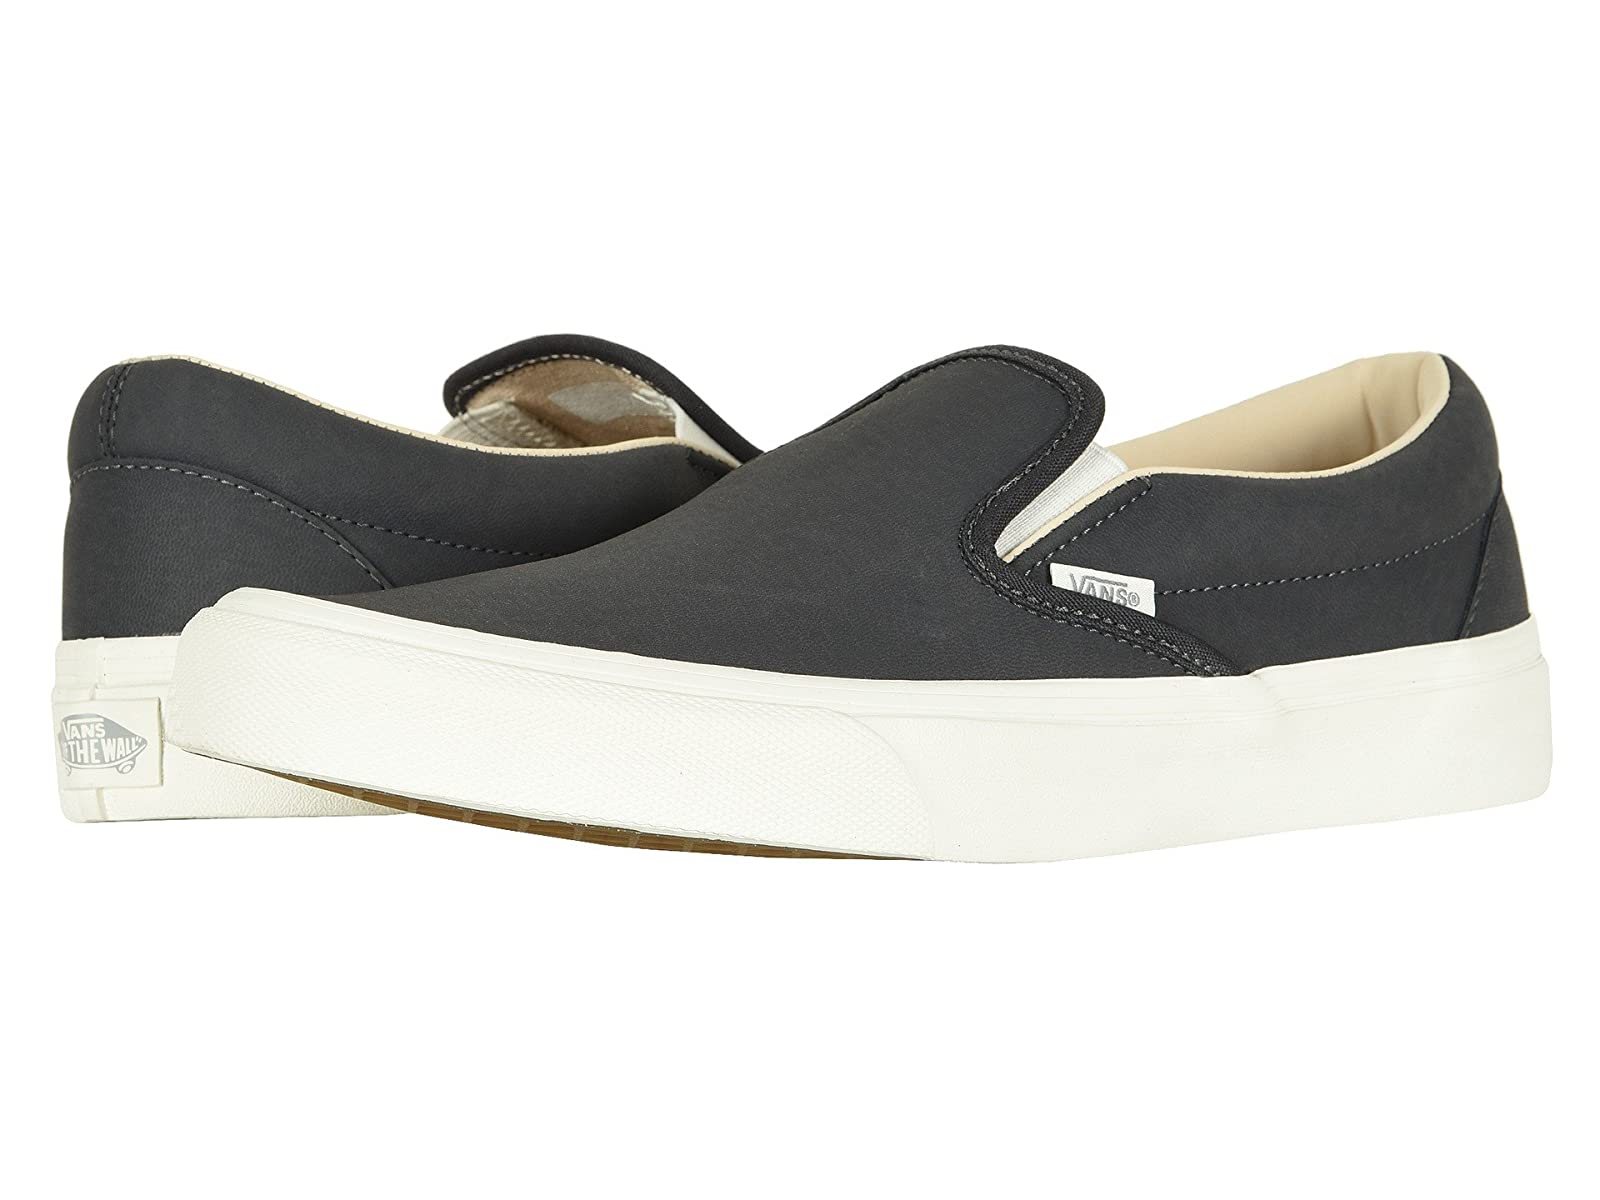 Vans Classic Slip-On™Atmospheric grades have affordable shoes